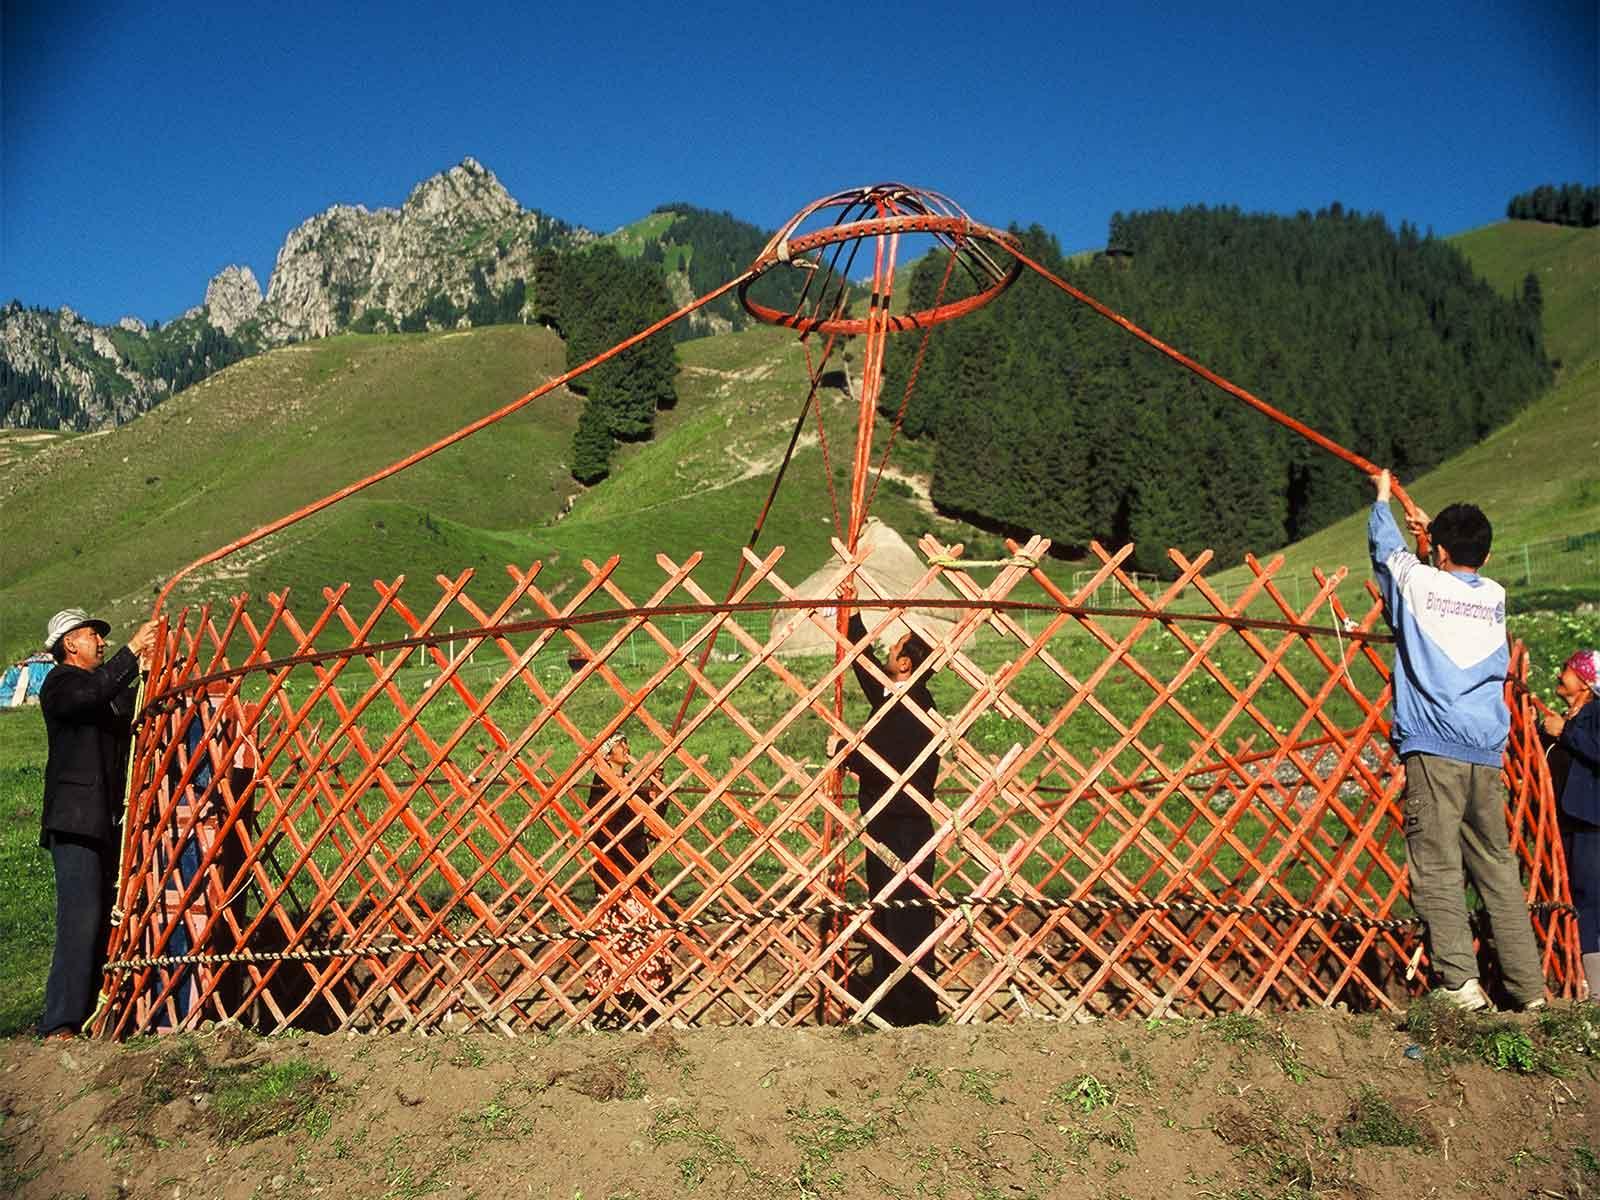 Kazakh family Constructing a Yurt in the Tianshan - Heavenly Mountains - Xinjiang China - Silk Road Research - Dr Steven Andrew Martin - Photo Journal